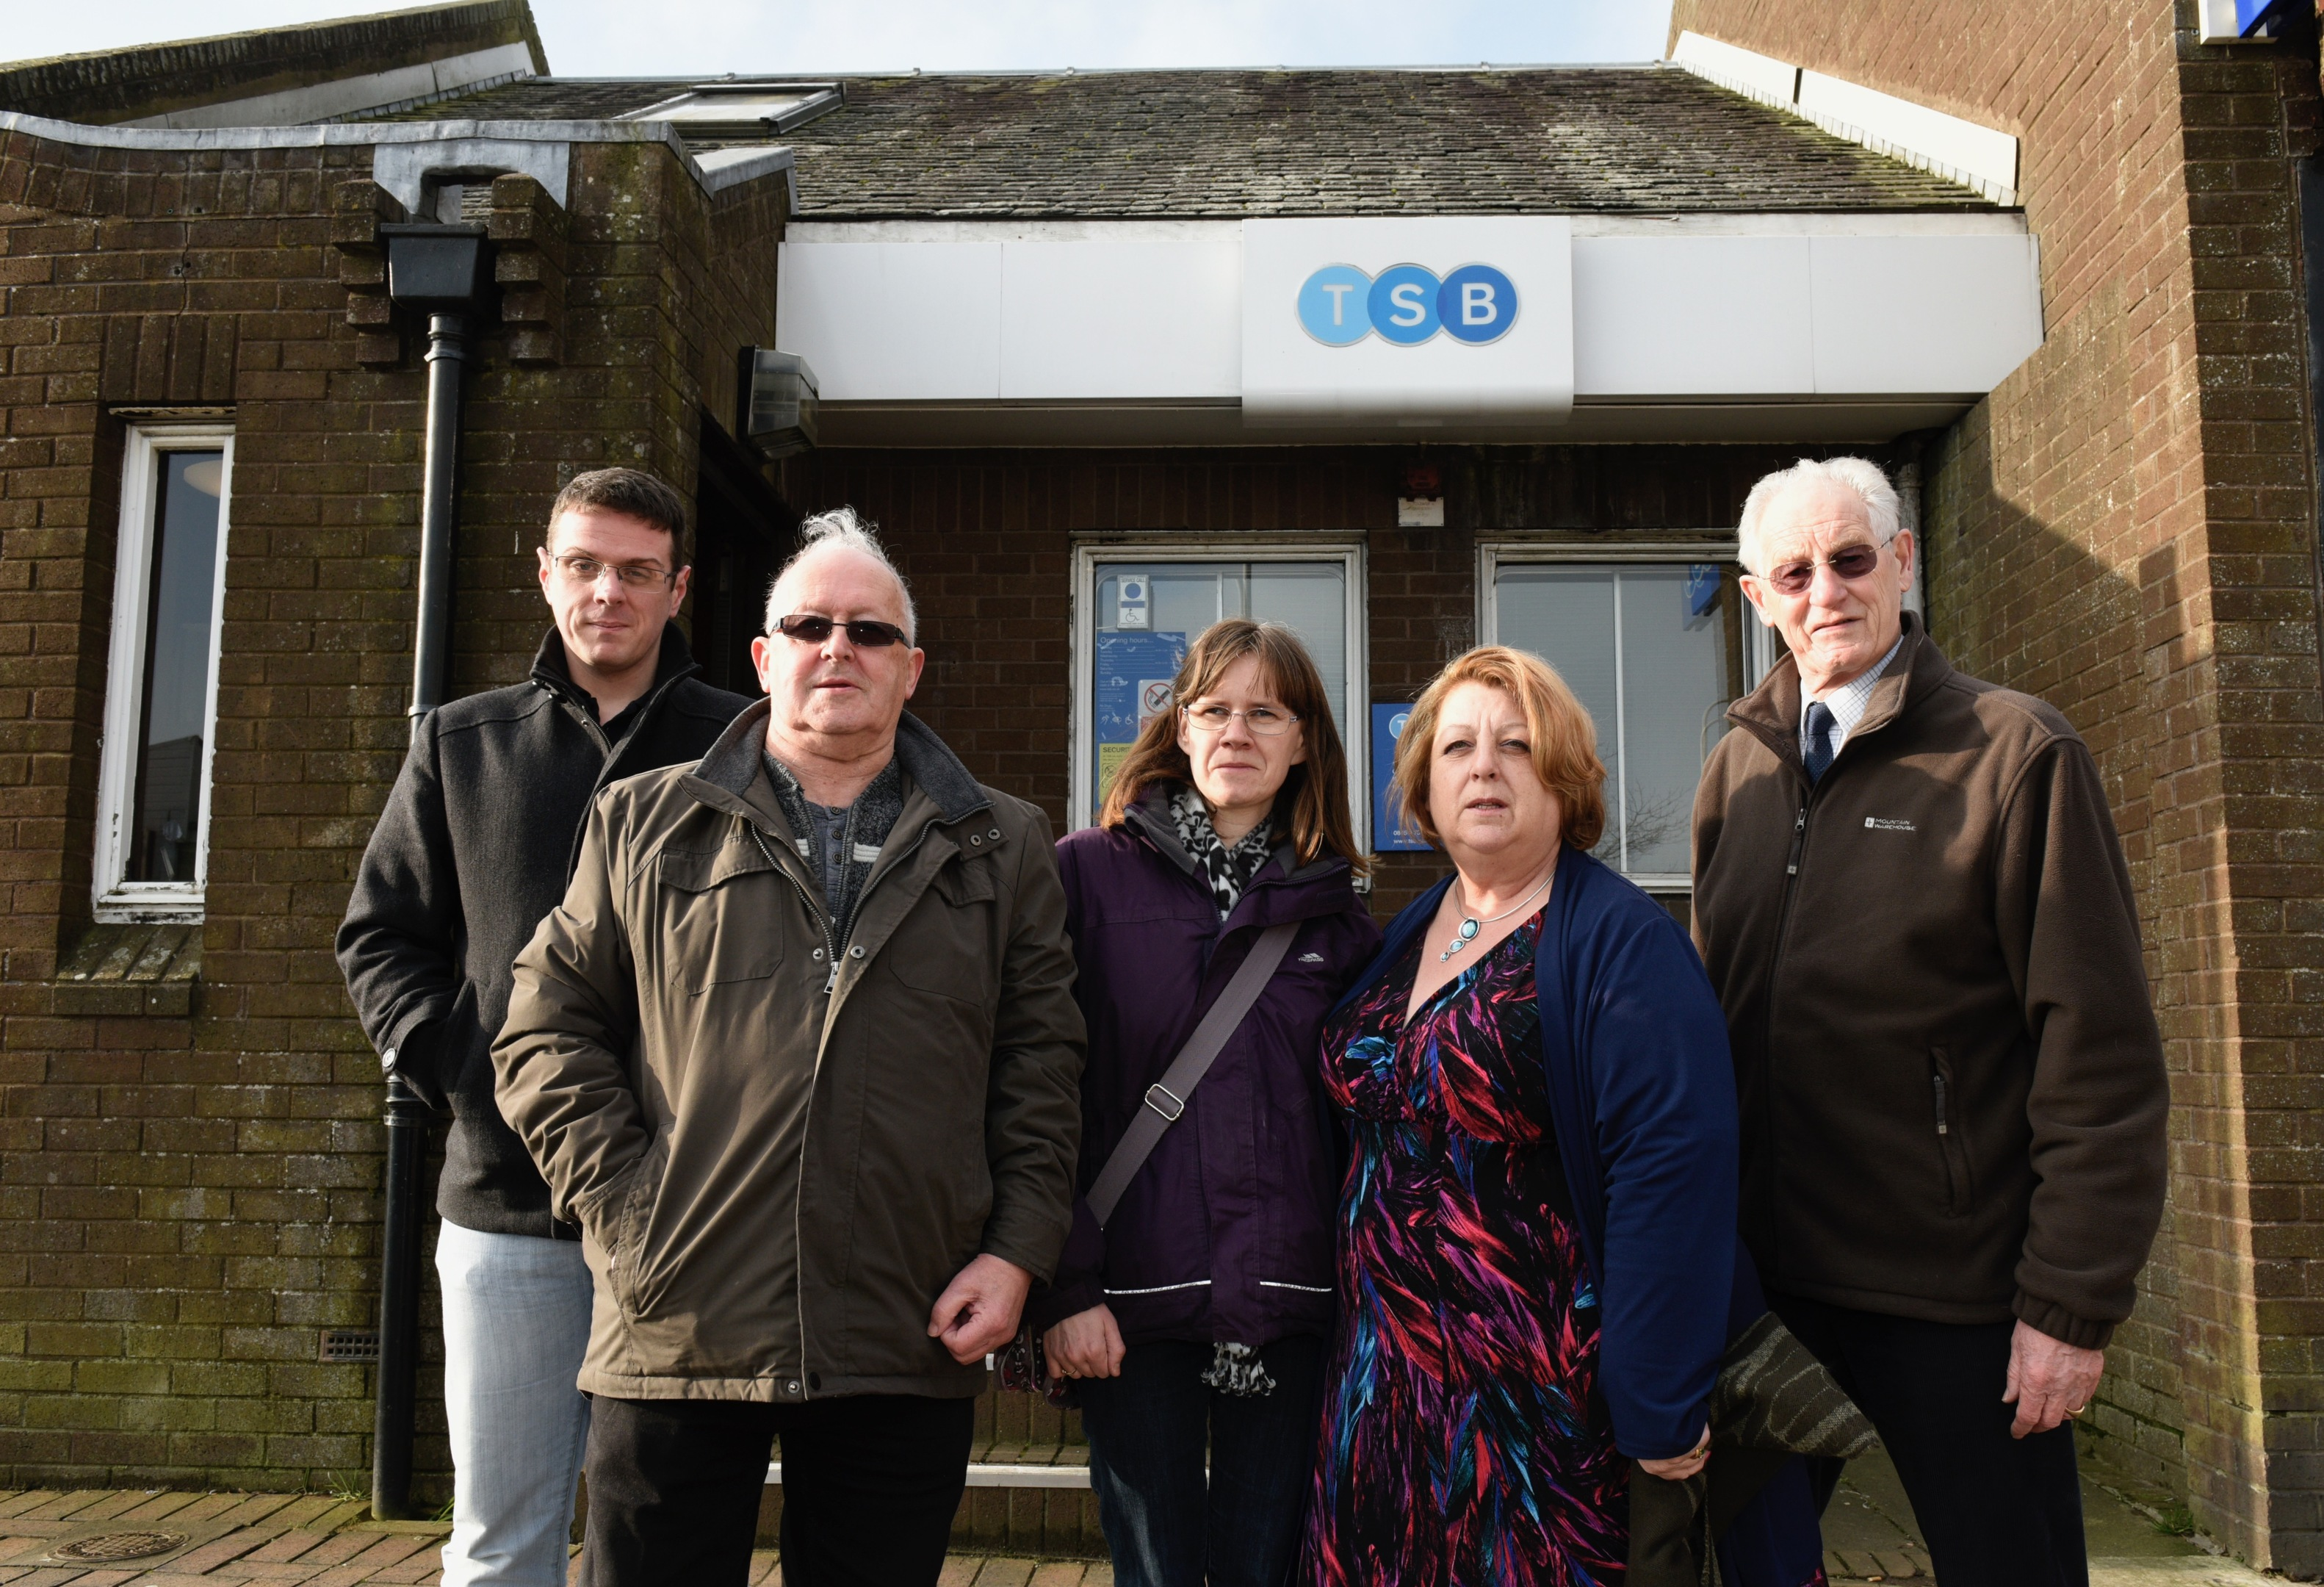 Locals are disappointed by the decision to close the TSB branch.